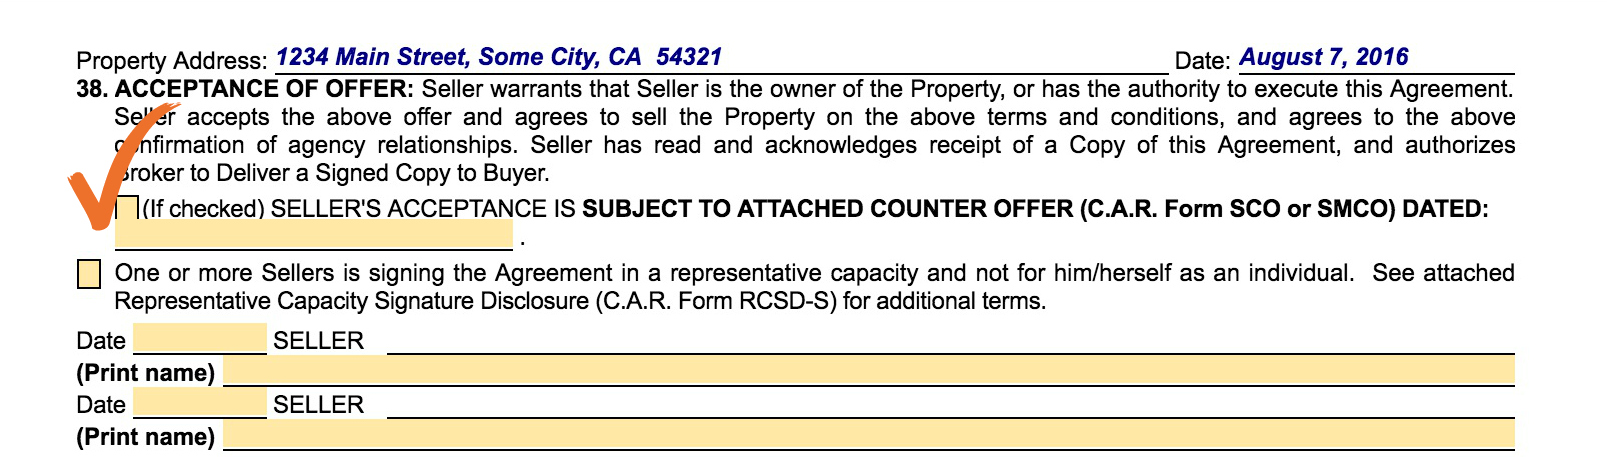 Vacant land purchase agreement, paragraph 38